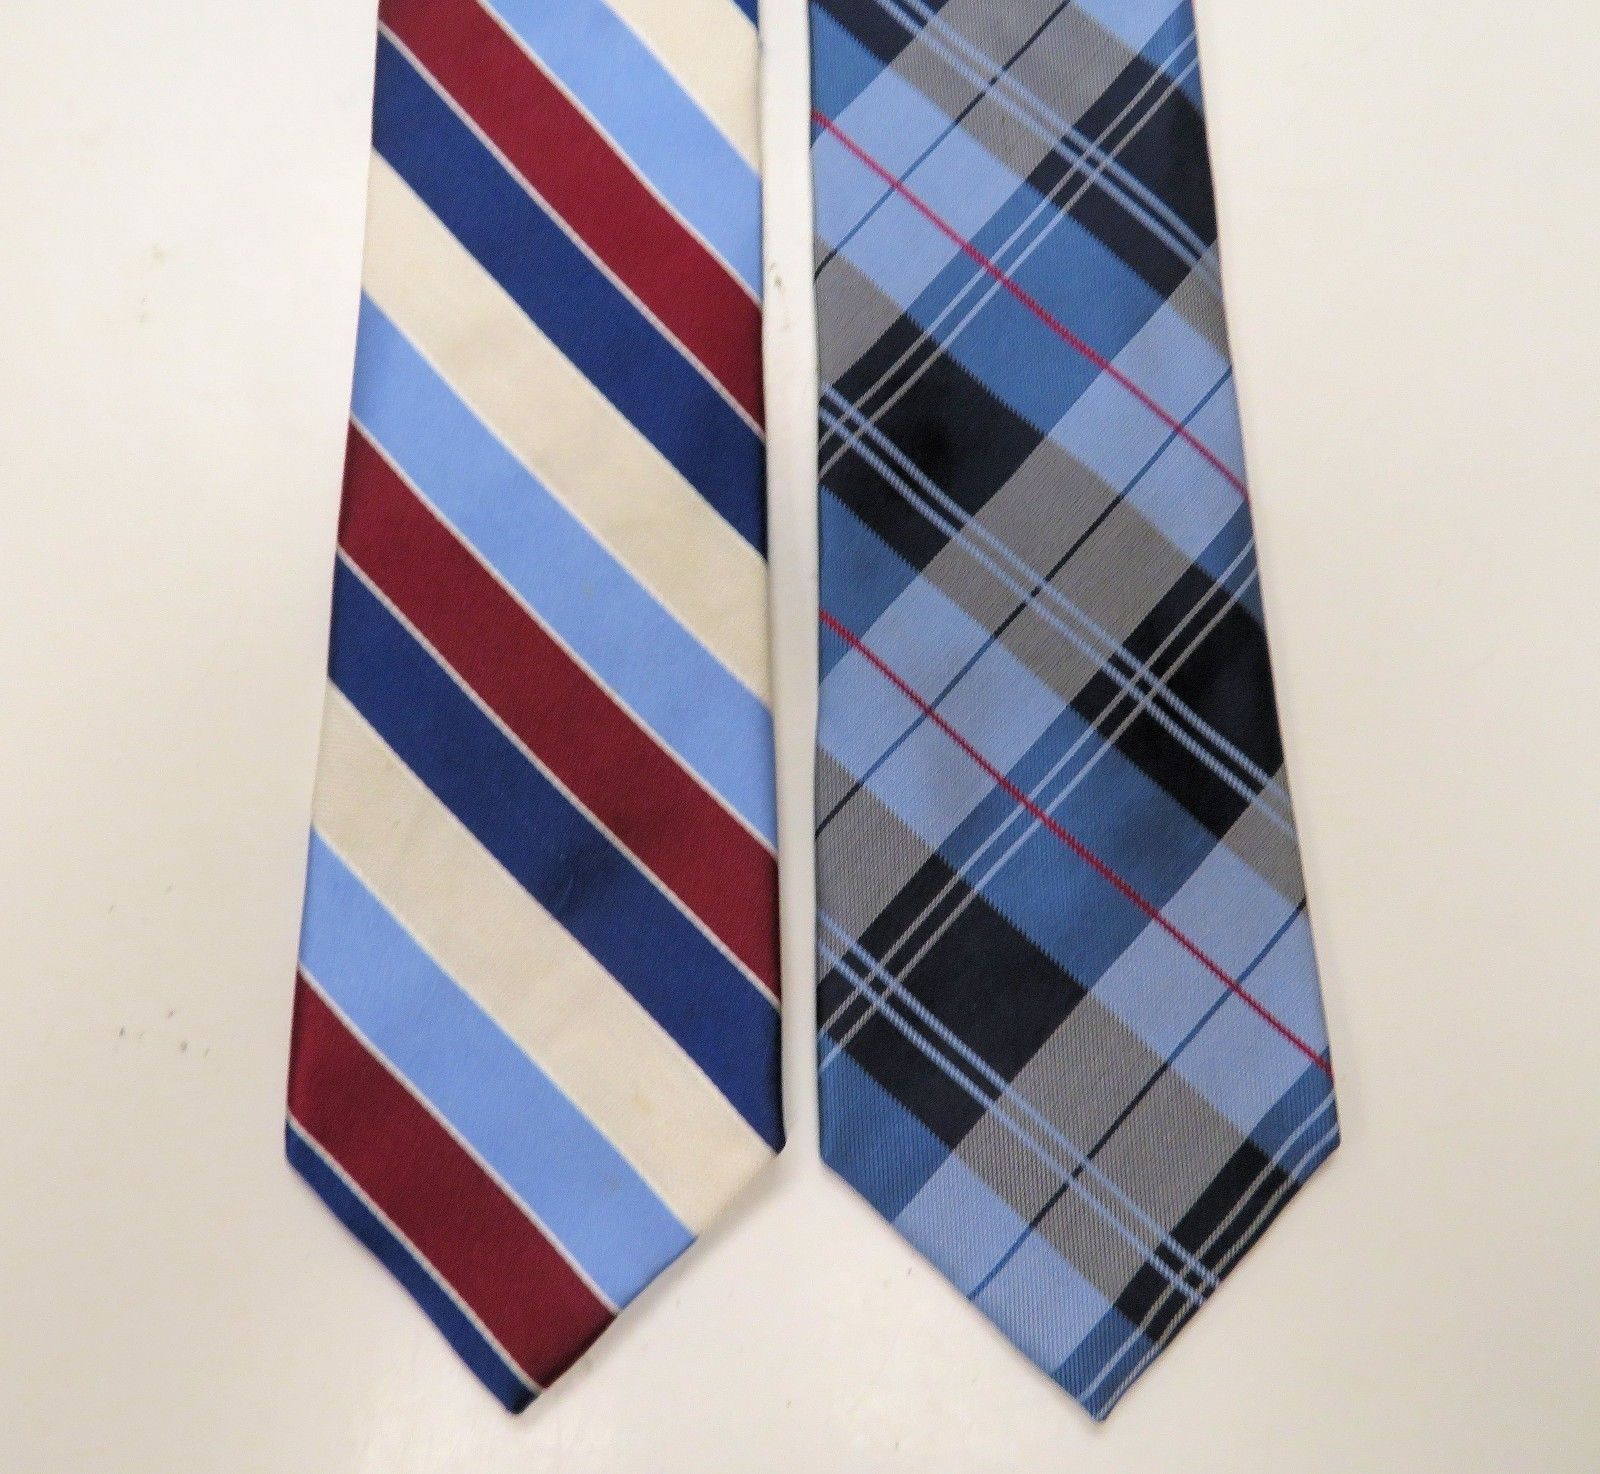 ff19a68fa 2 Tommy Hilfiger Tie Silk   Linen Striped and 50 similar items. S l1600